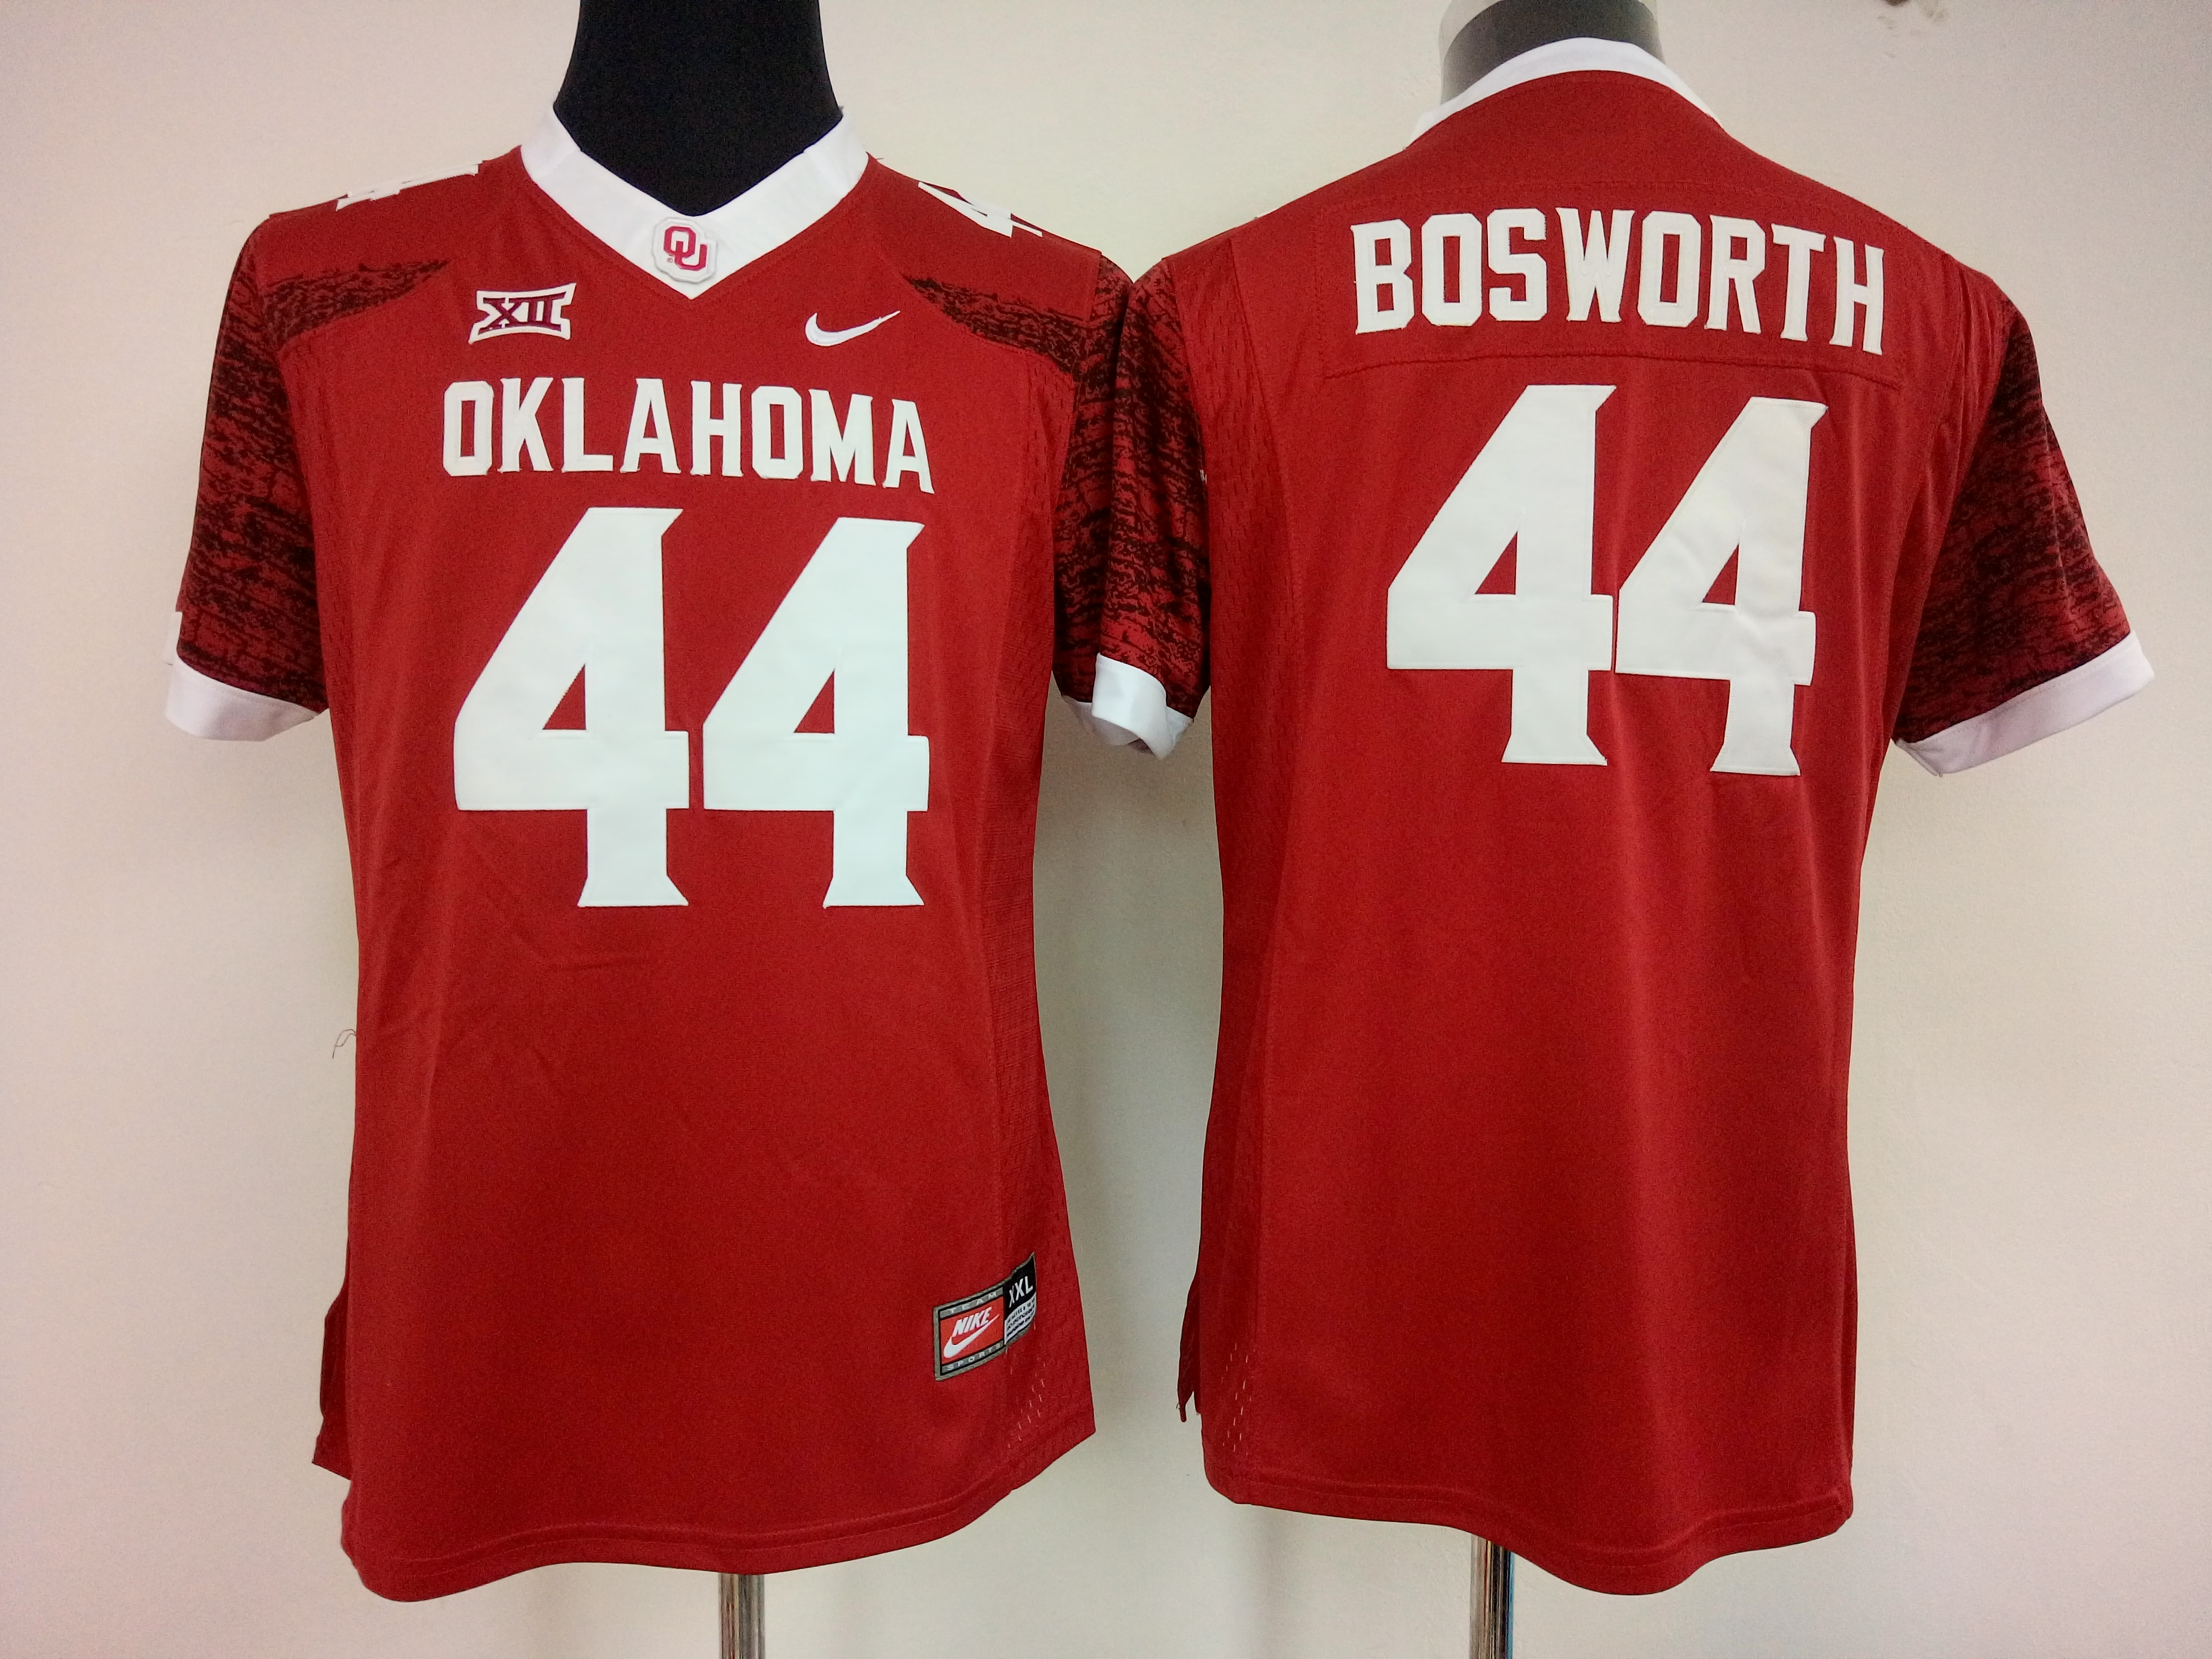 NCAA Womens Oklahoma Sooners Red 44 bosworth jerseys